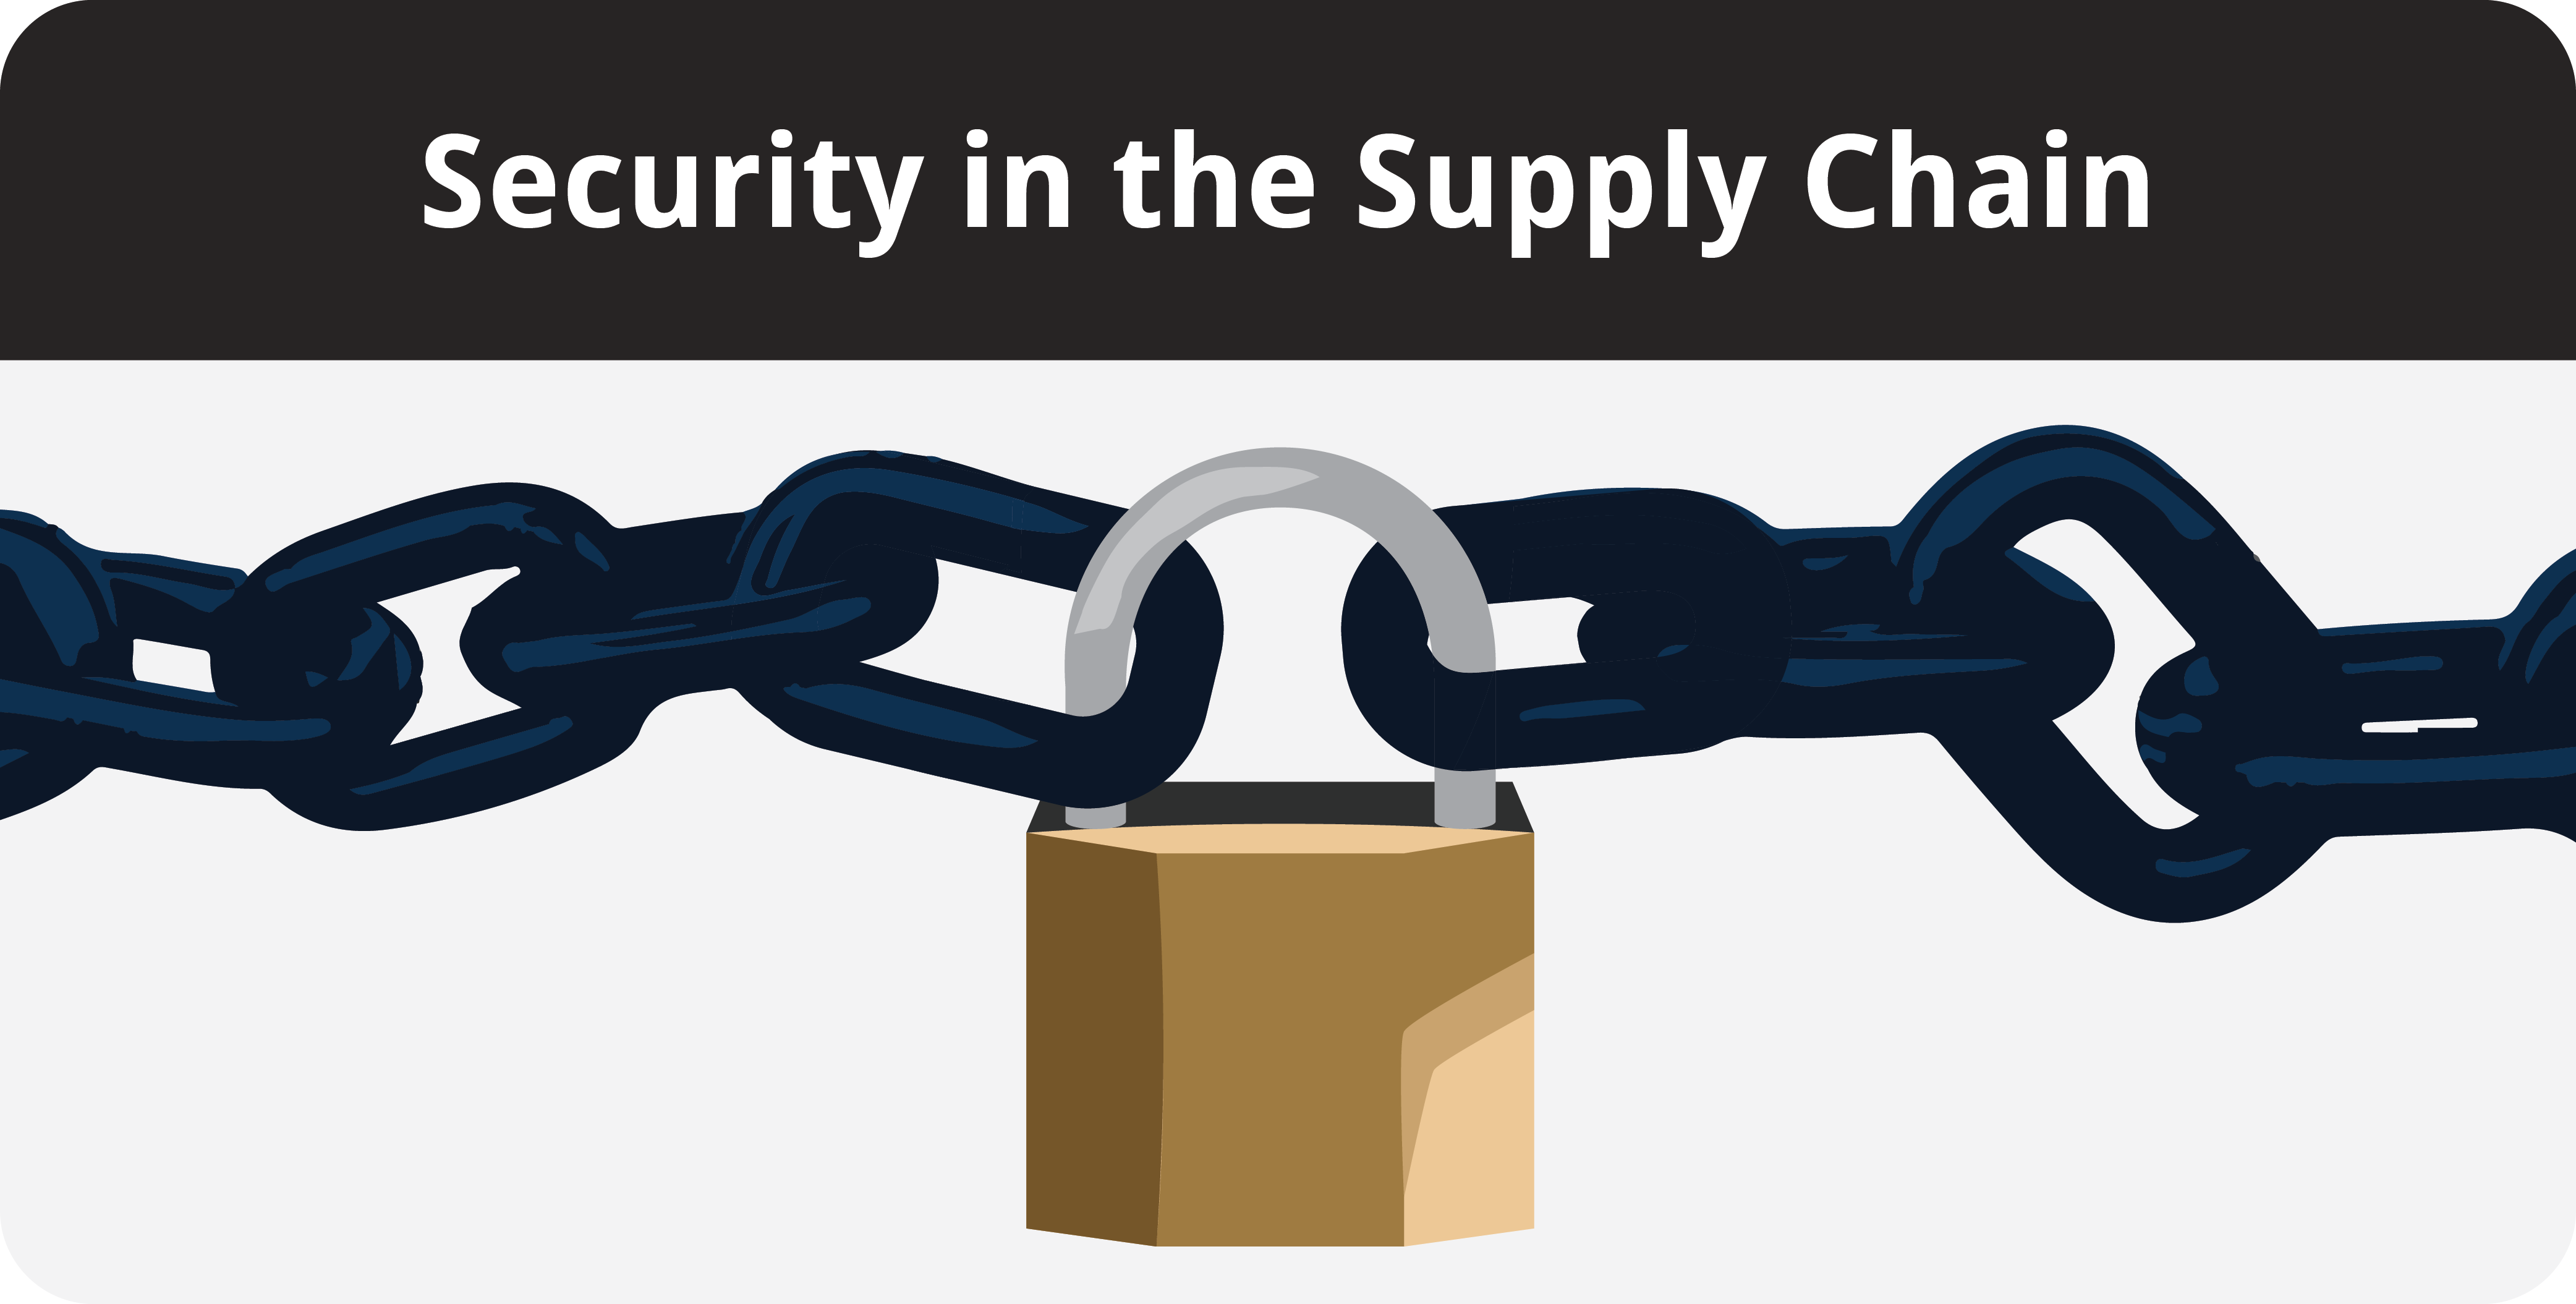 supply chain management and security vulnerability The supply chain as a whole is only truly secure when all entities throughout the supply chain carry out effective, coordinated security measures to ensure the integrity of supply chain data, the safety of goods, and the security of the global economy.